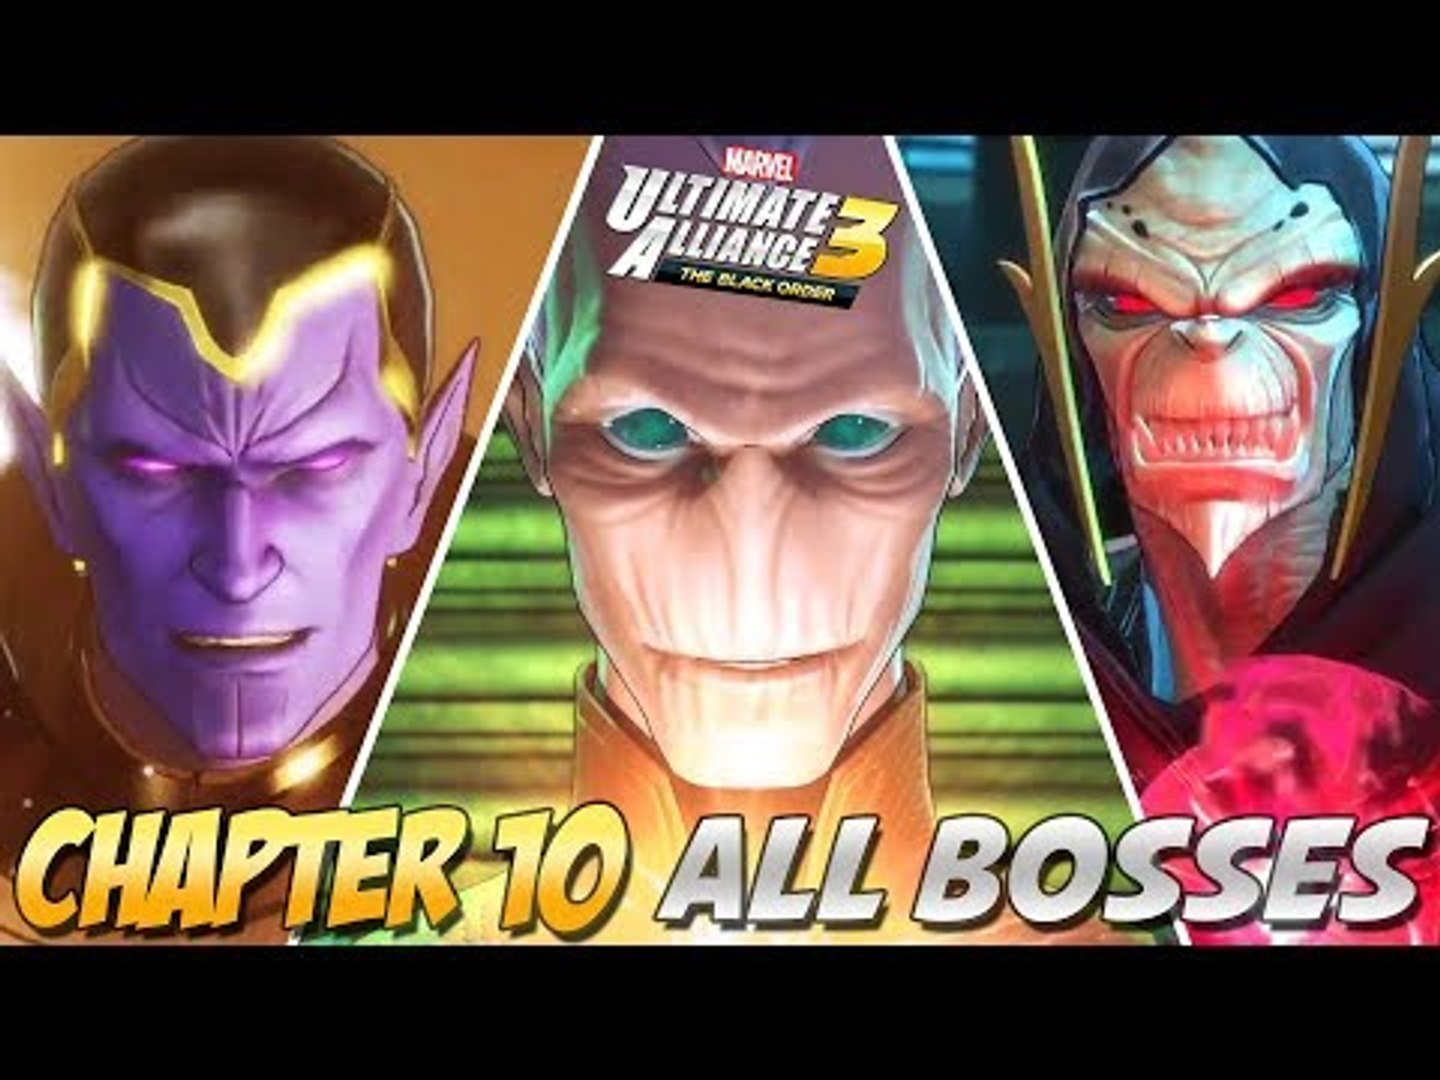 Marvel Ultimate Alliance 3 ALL BOSSES (Chapter 10)